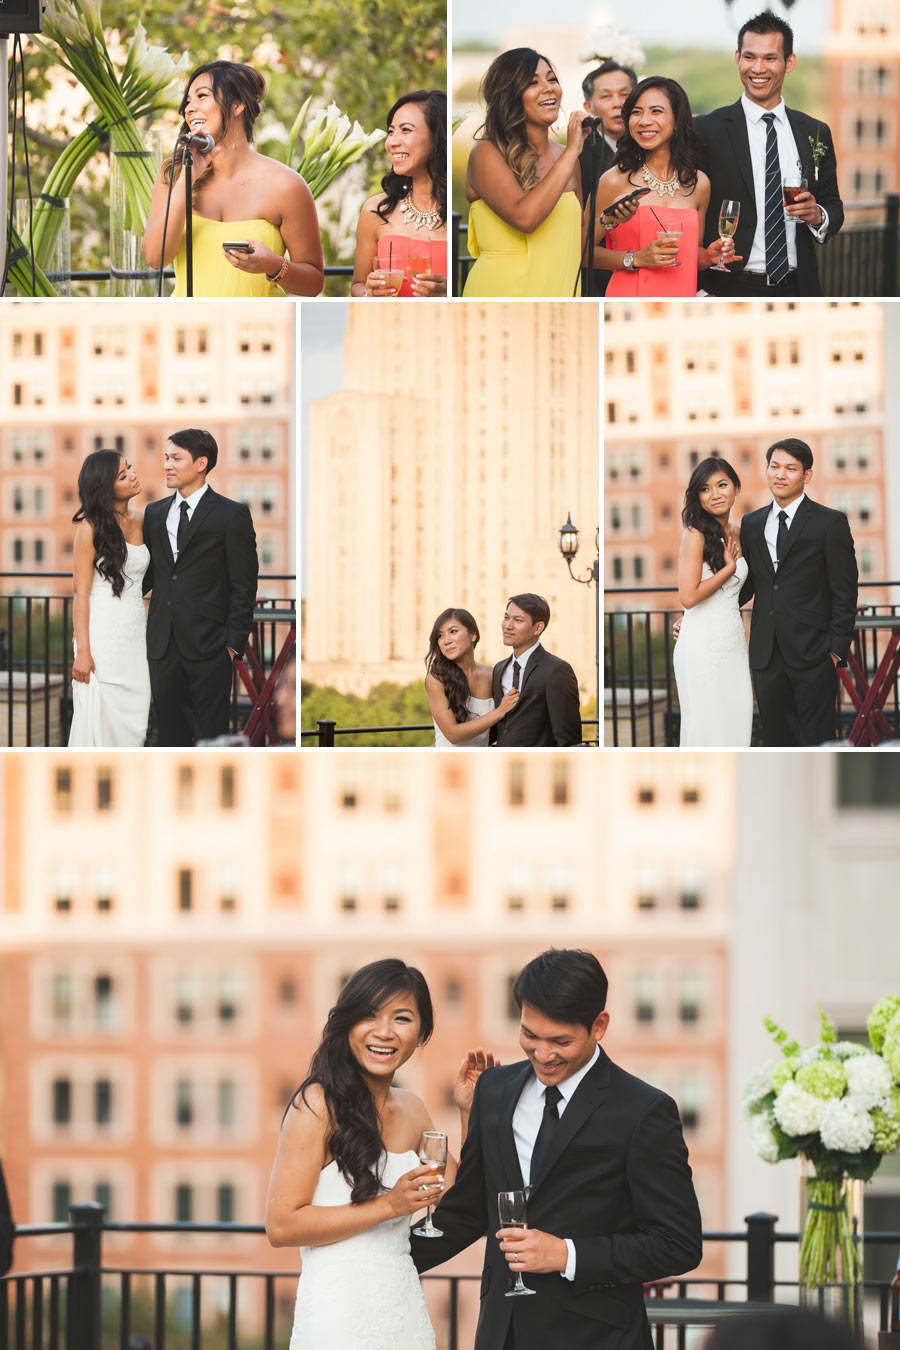 pittsburgh-wedding-photographer-at-university-club-vietnamese-tea-ceremony-wedding-oakland-22